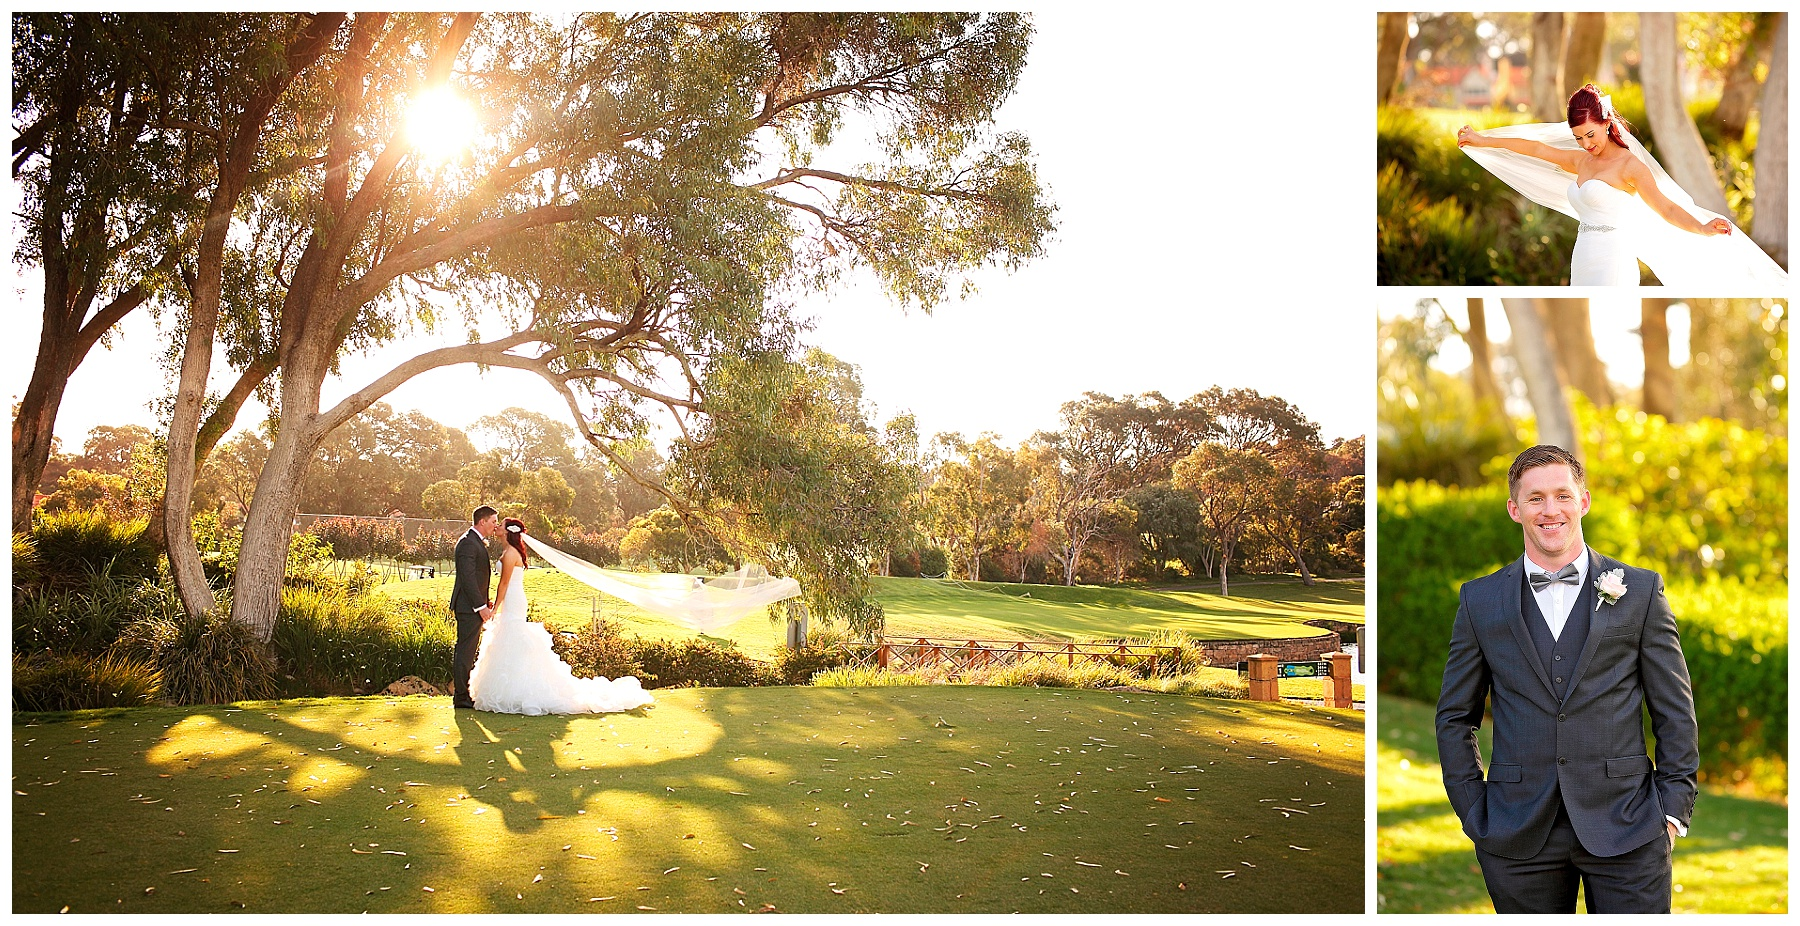 Garden wedding Joondalup Resort